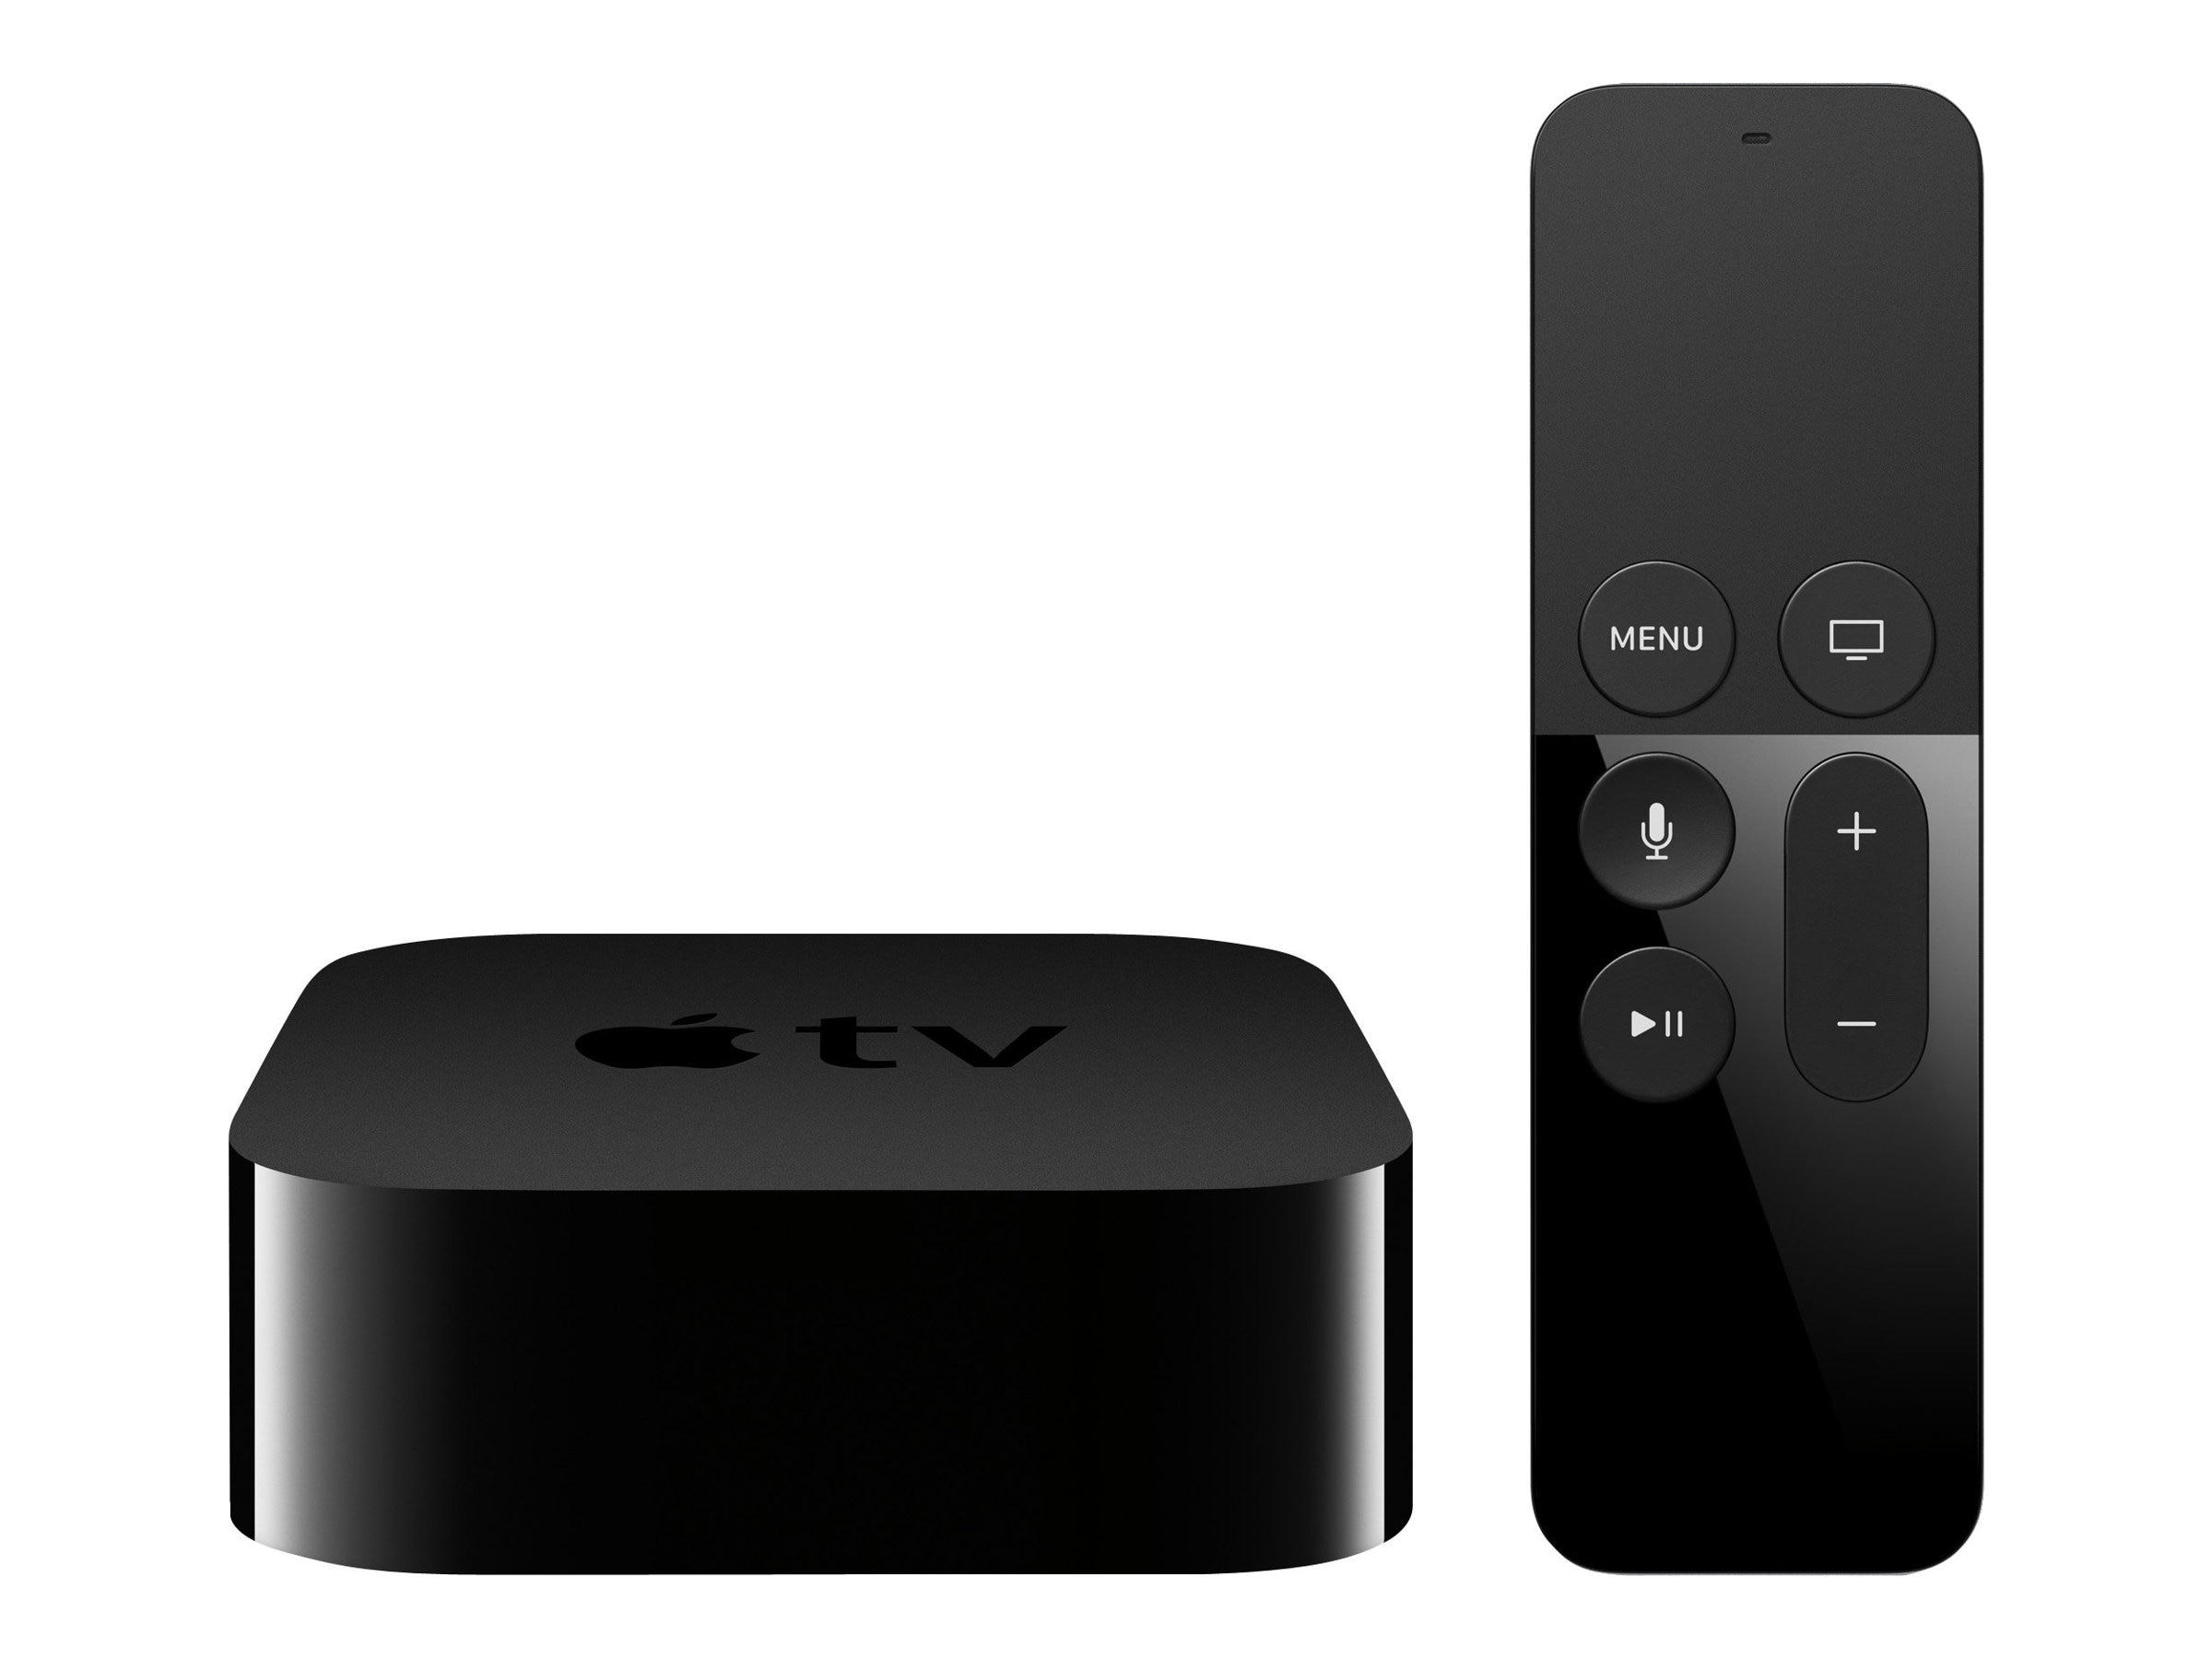 Apple Apple TV, 64GB, MLNC2LL/A, 30761695, Streaming Media Players